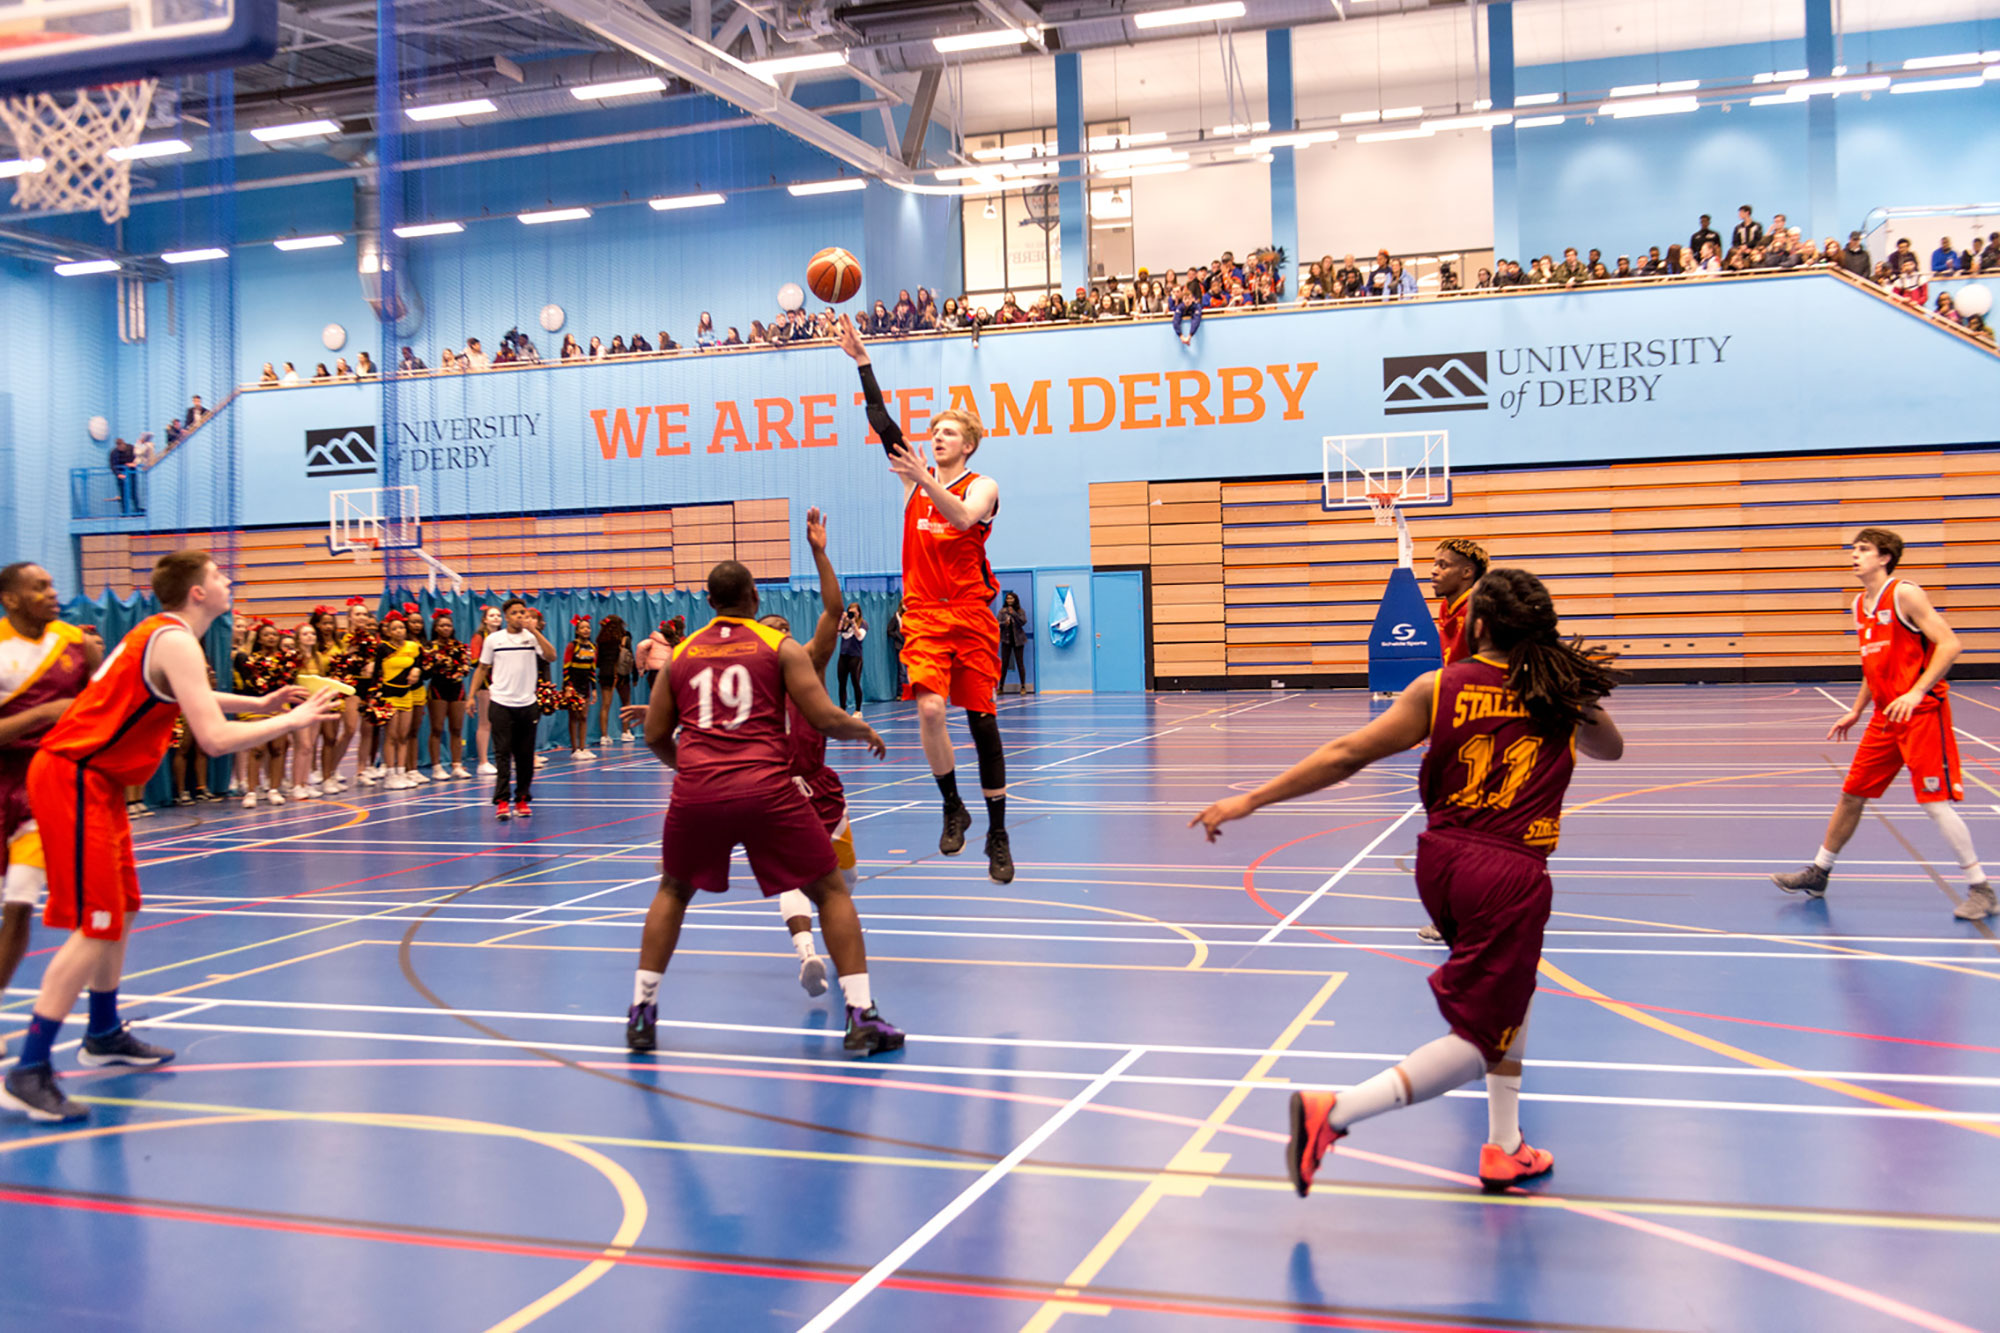 Men's Basketball team in action at Varsity 2018